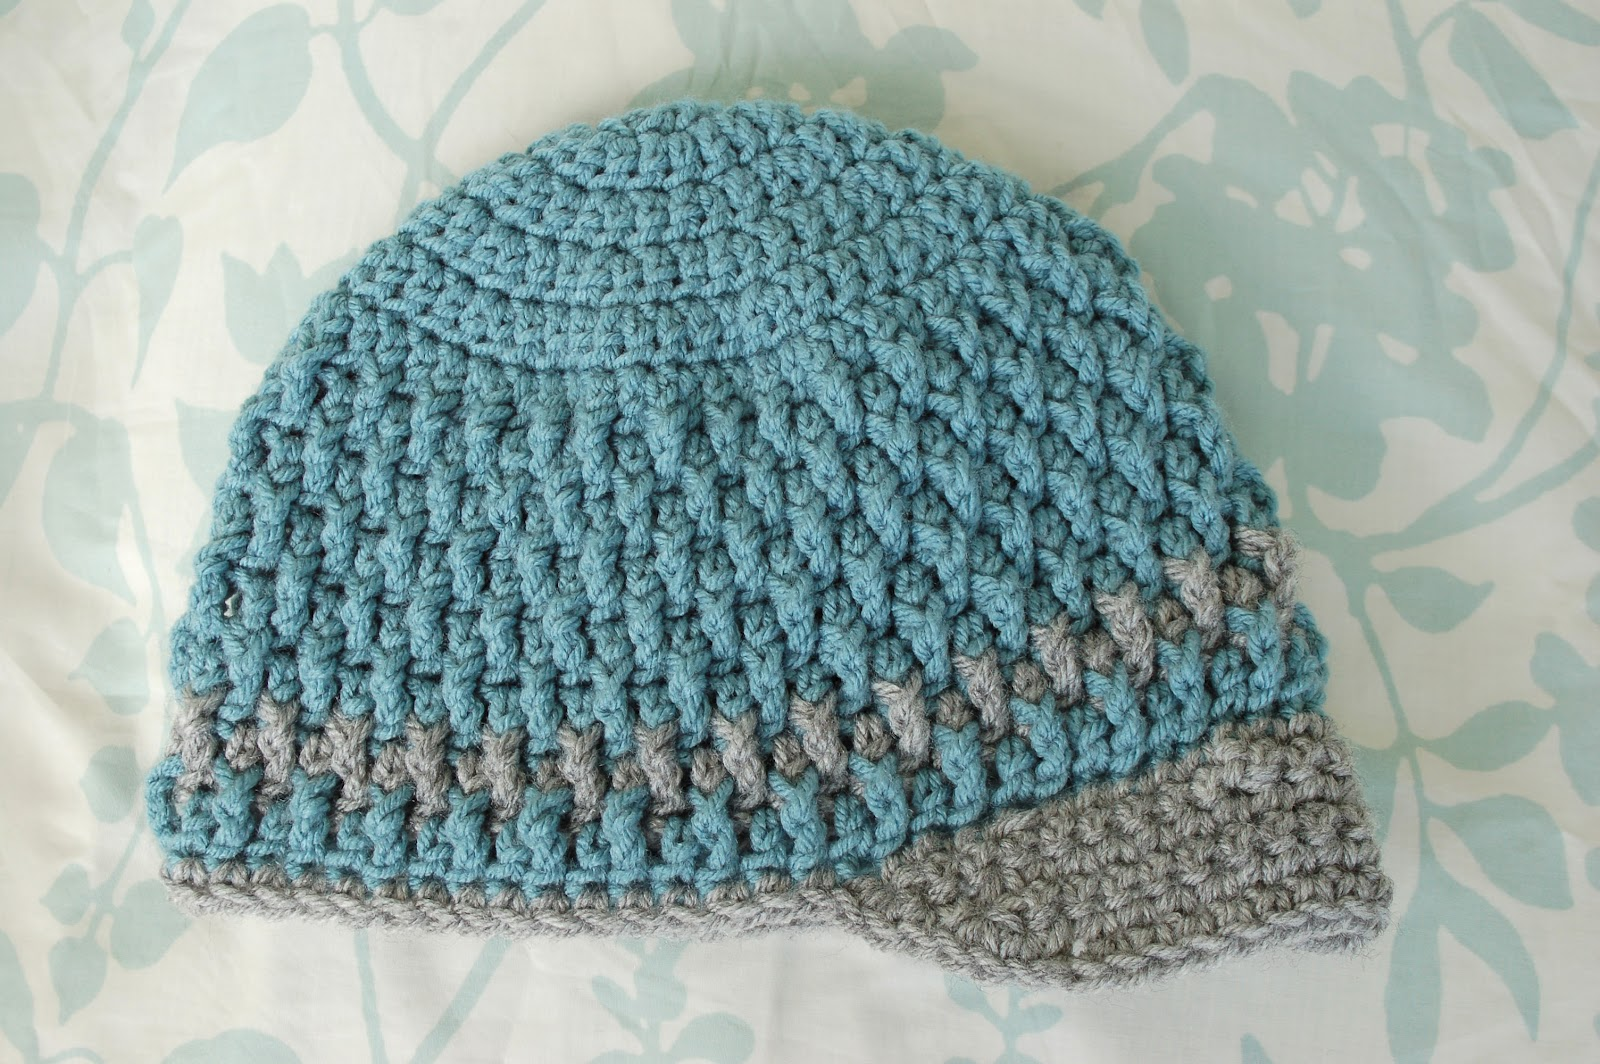 Free Crochet Patterns For A Baby Blanket : Alli Crafts: Free Pattern: Deeply Textured Hat - Toddler